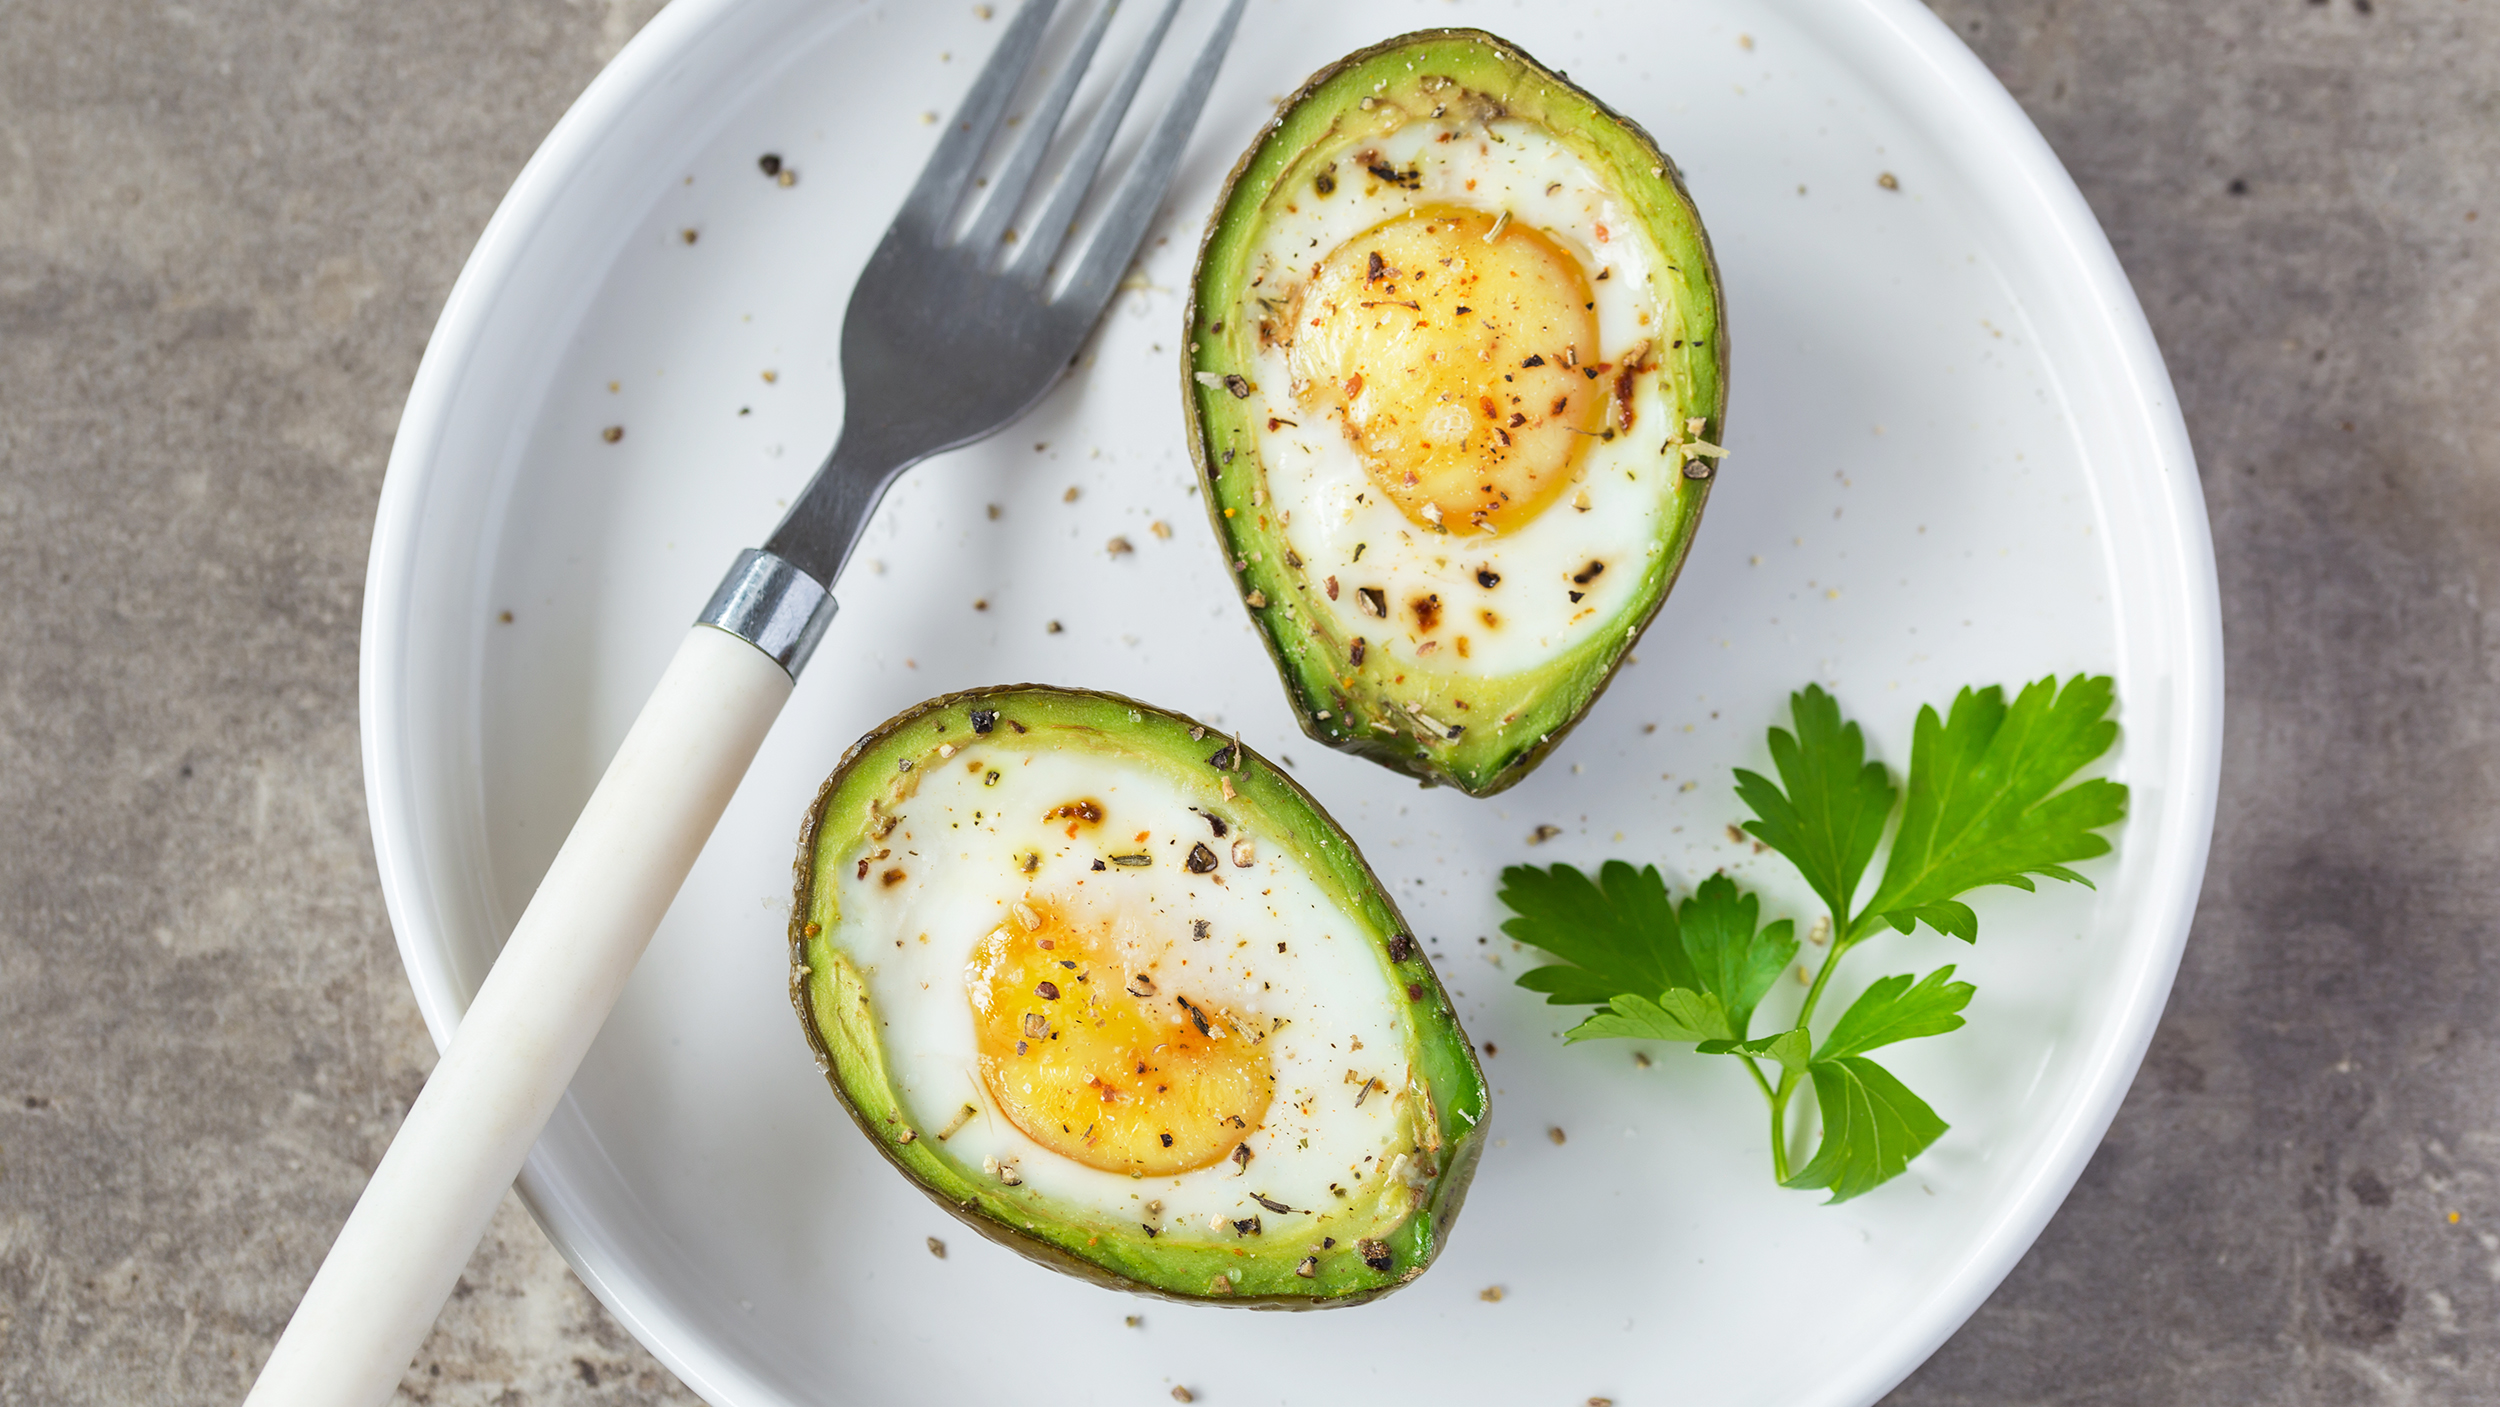 These 6 Breakfast Hacks Will Make Your Busy Mornings Easier